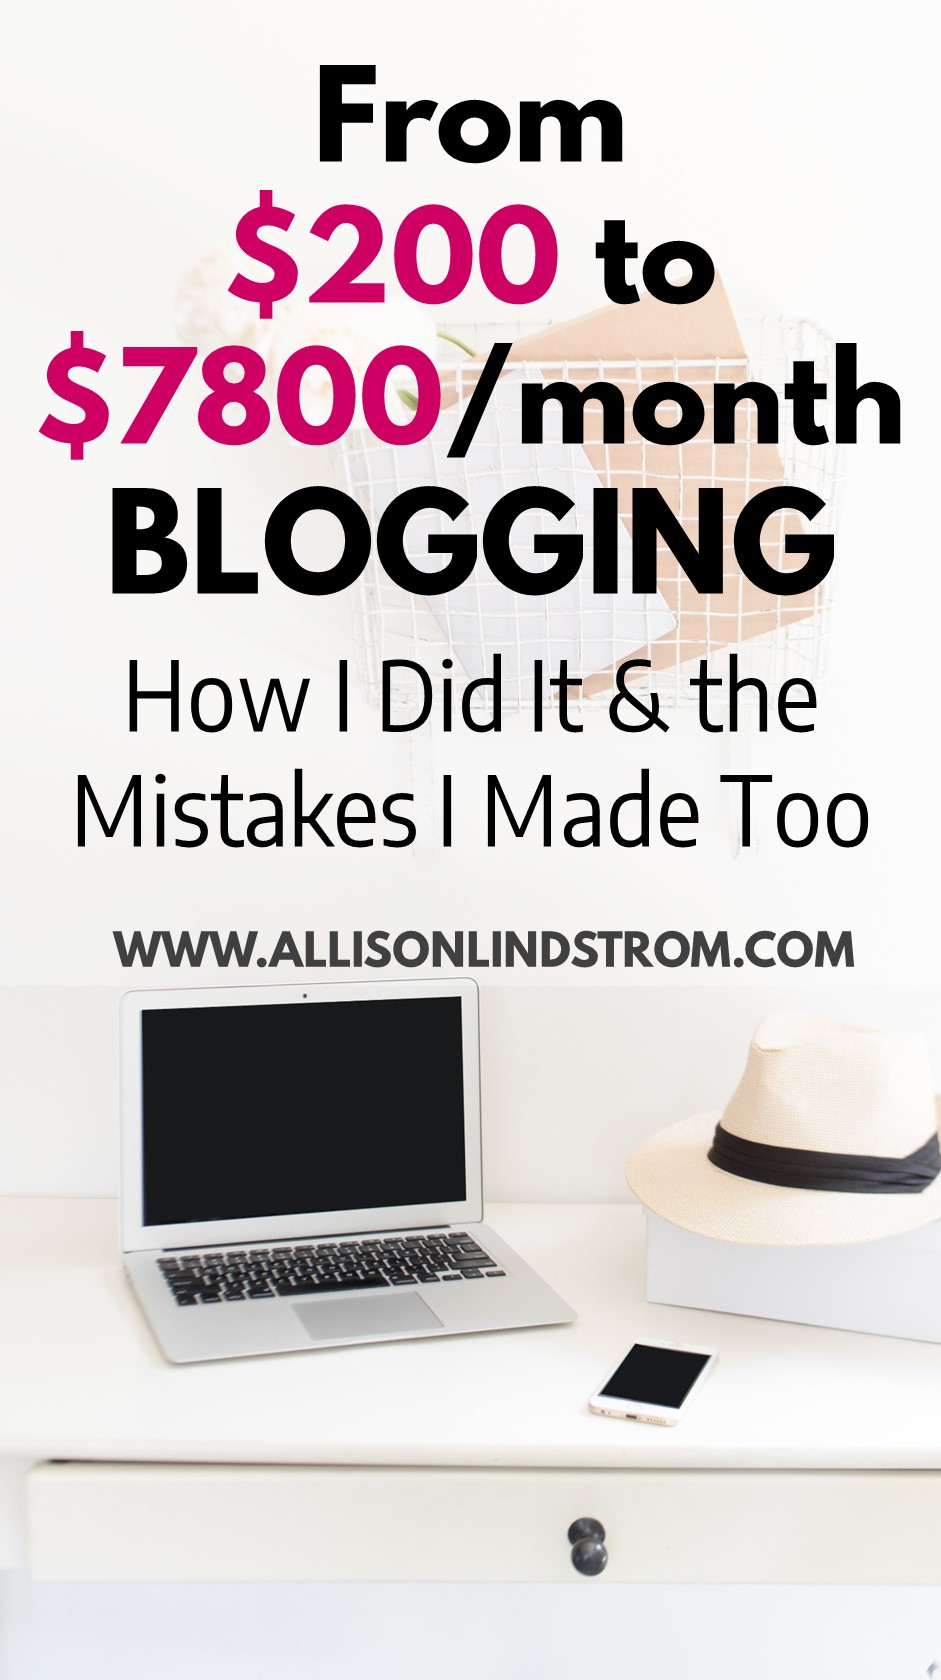 "I have such a special blogging income and expenses report to share this month! My business hit a huge milestone this August with over $7,800 in monthly revenue and to celebrate, I'm sharing details about ""make money blogging"" journey, what I did right, what I did wrong, and what this means for the future of AllisonLindstrom.com!  ● $7,800/month Blogging ● The Special Income & Expenses Report of My Blogging Milestone ● My Make Money Blogging Journey"